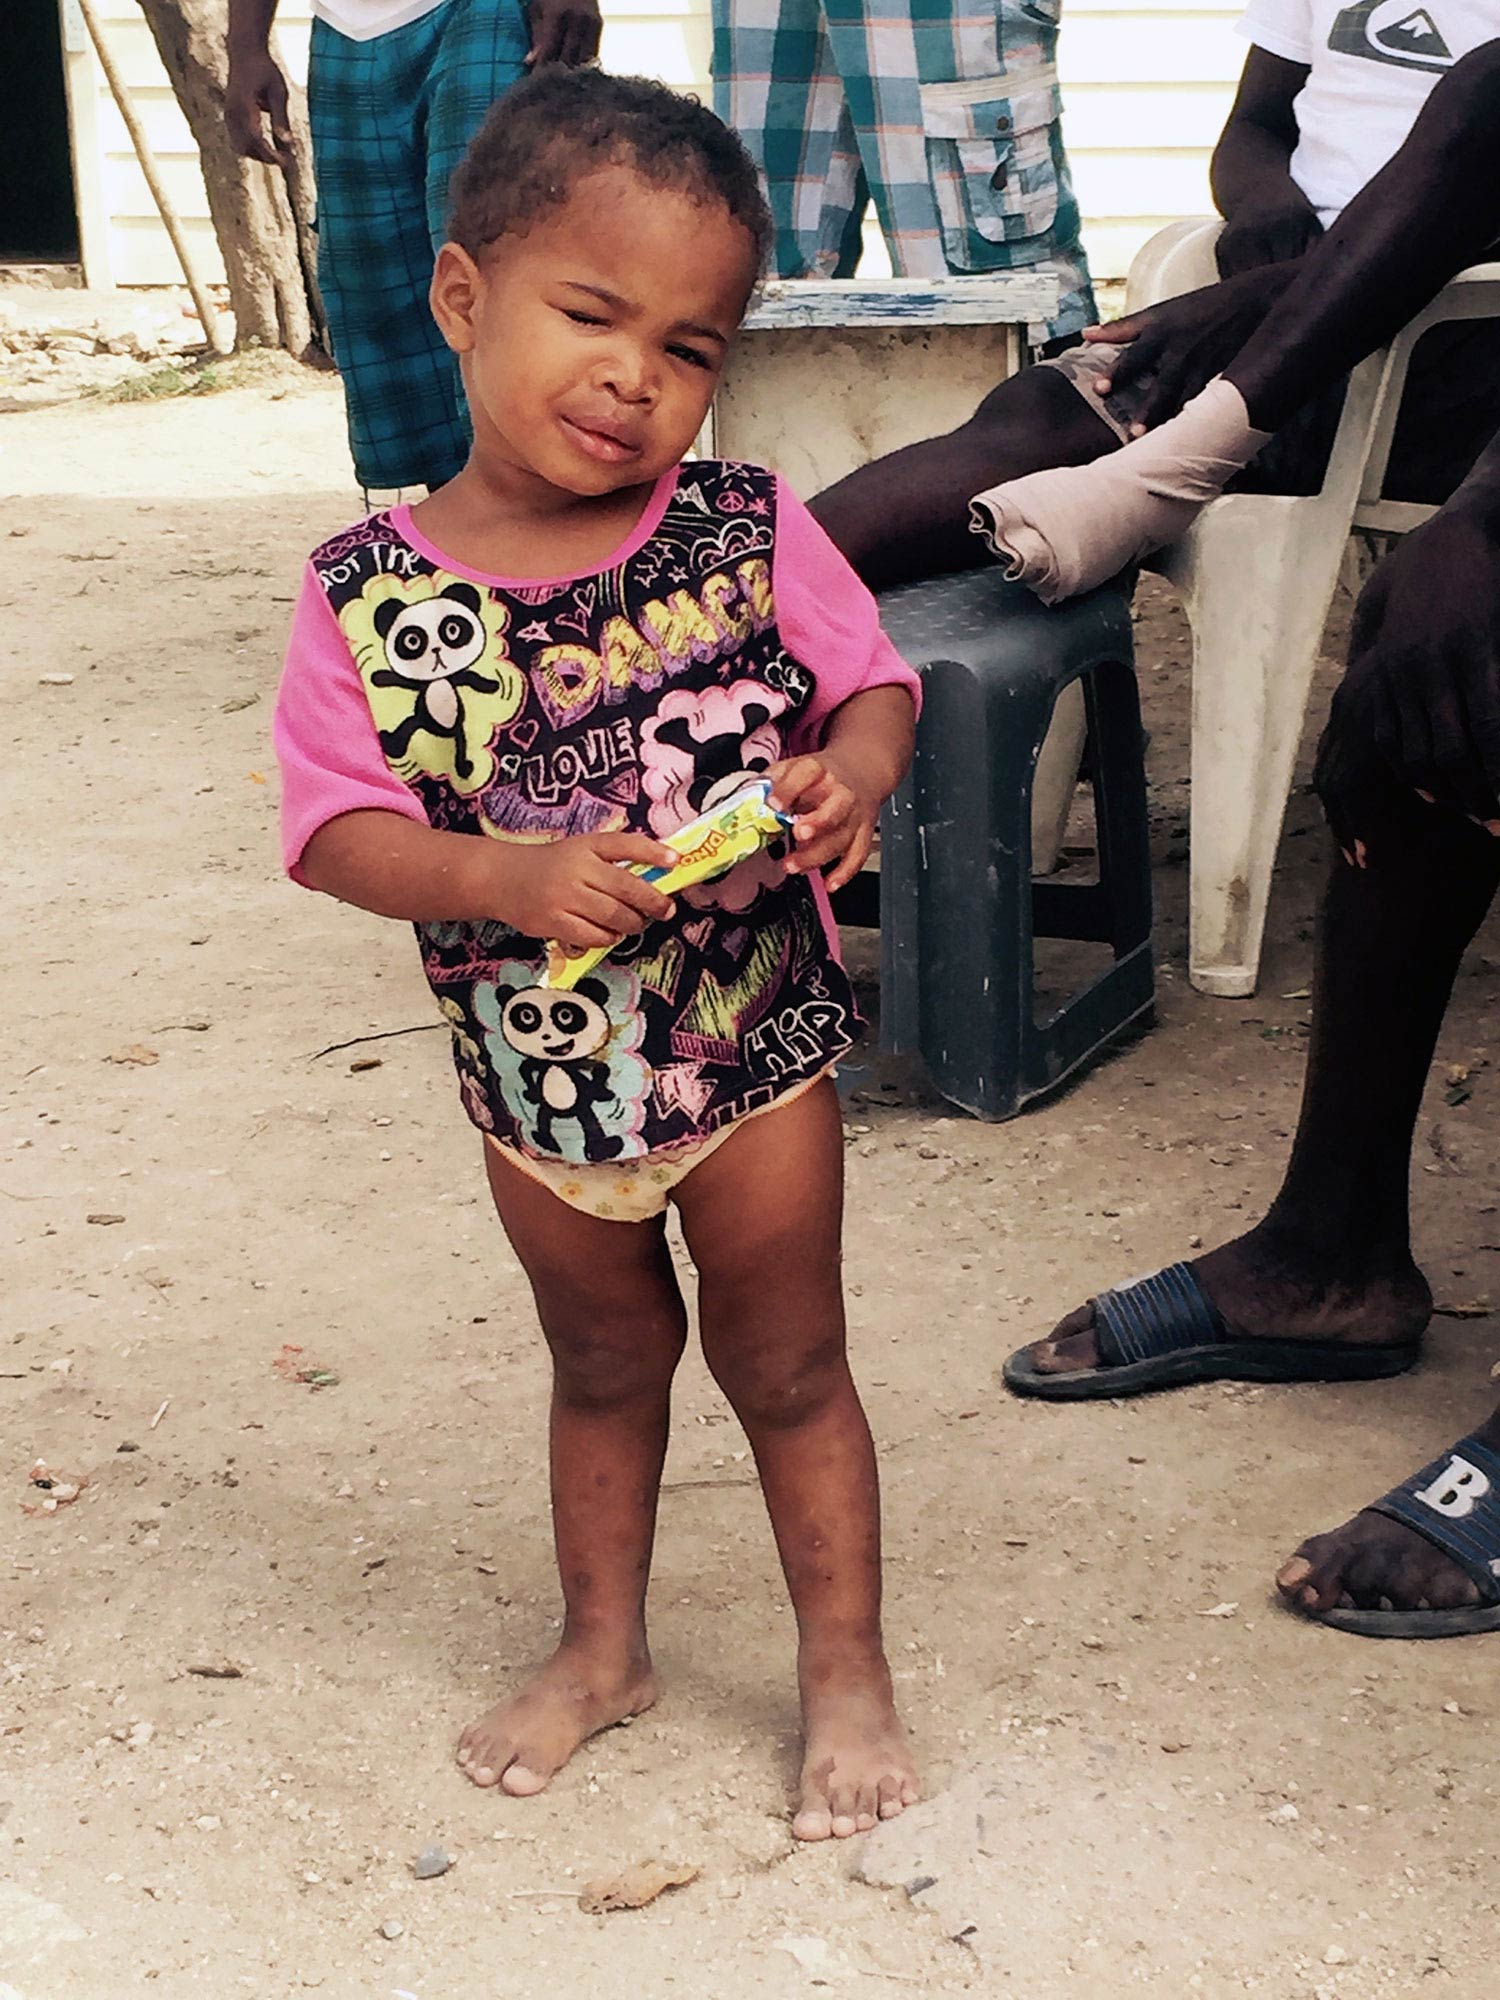 Sara was born in 2013 blind in one eye. Providing Sara daily essentials such as nutrient dense foods, clothing, shoes, educational supplies, and toys will greatly increase her opportunities for a successful future despite her challenges.